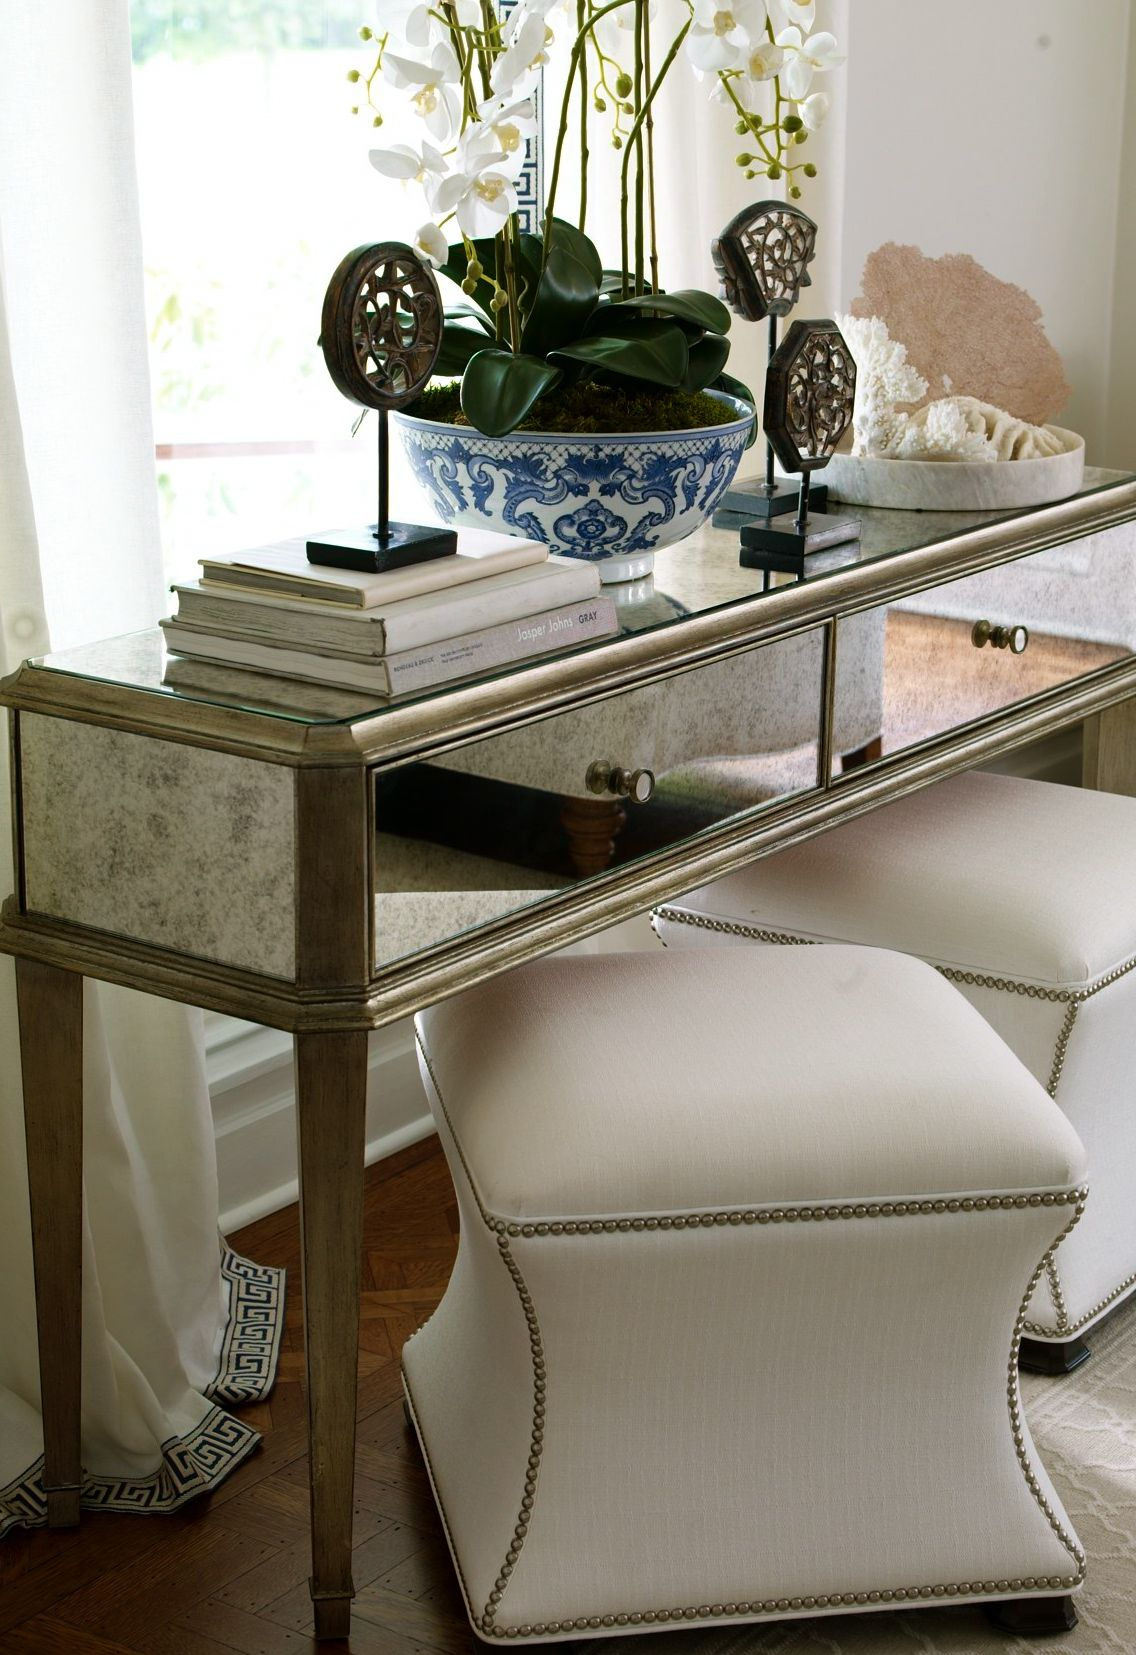 Pin by cindy montano on home ideas pinterest glamour vignettes